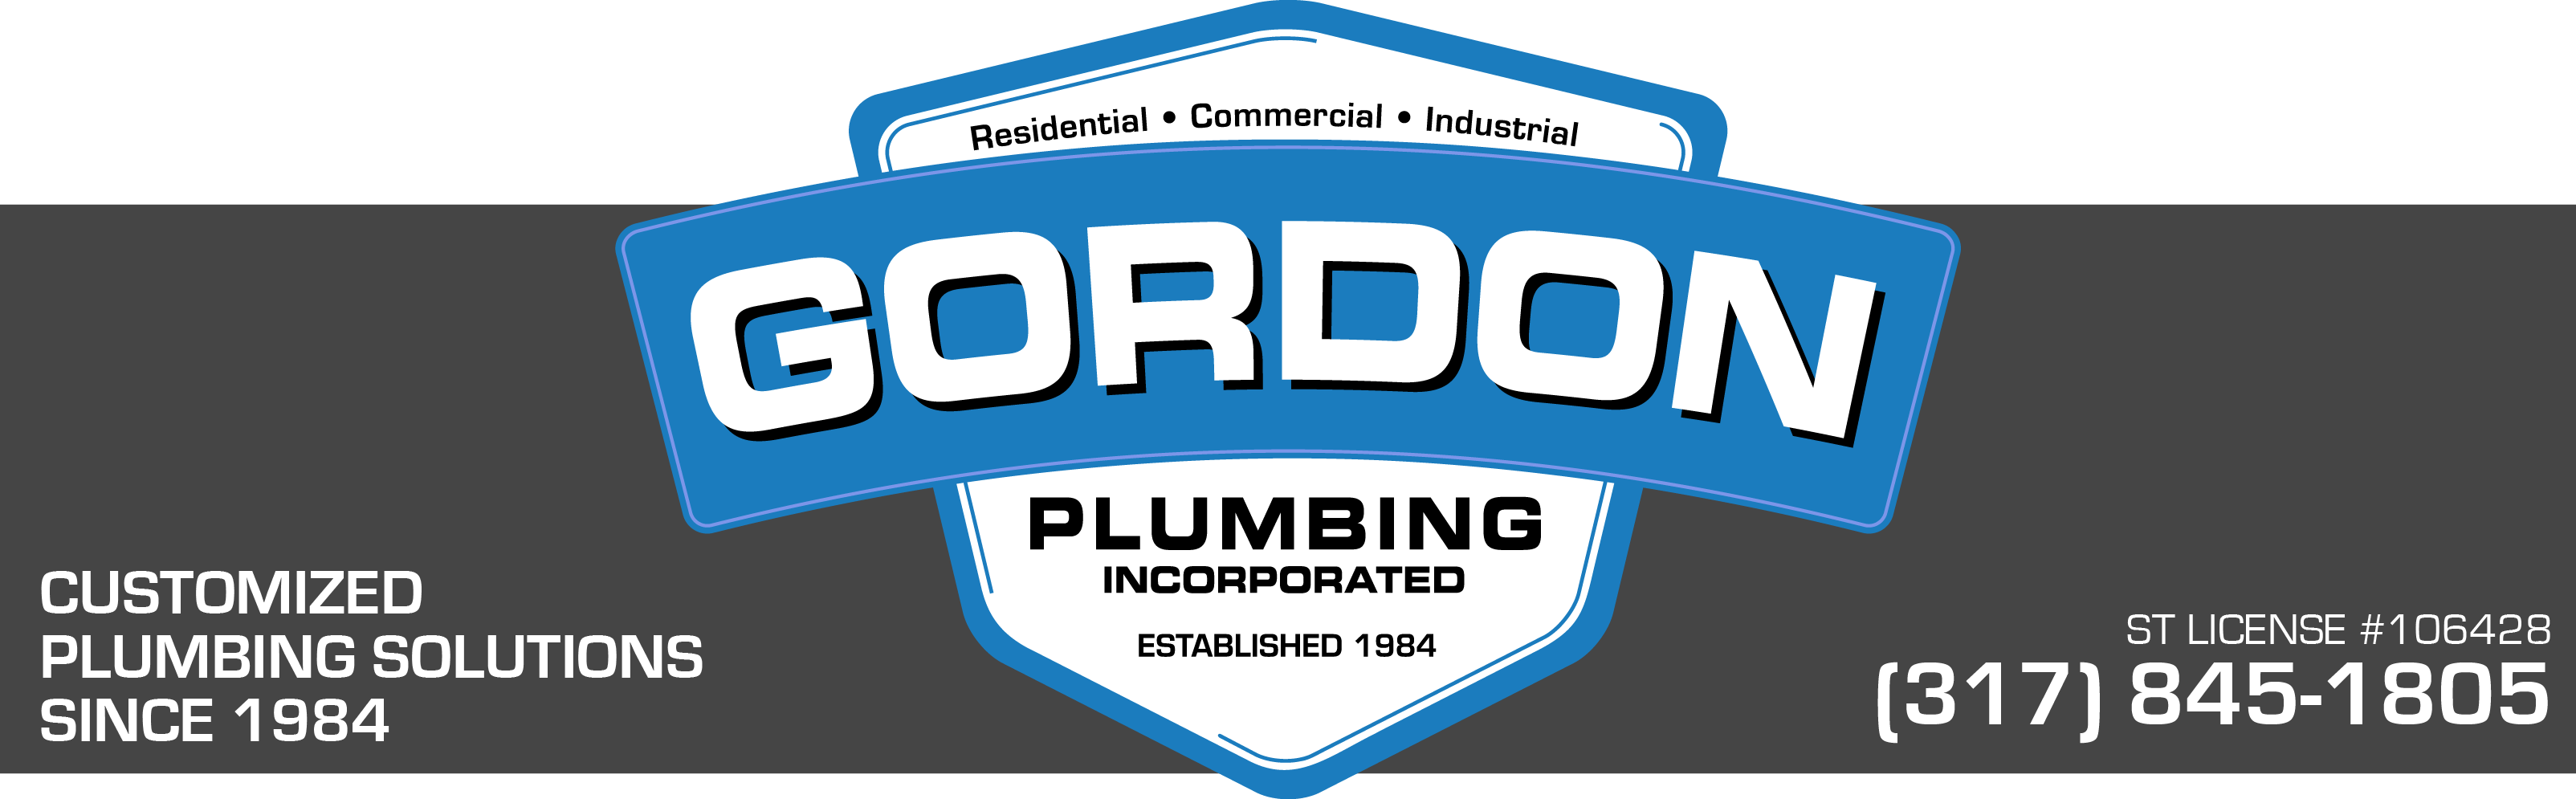 Indianapolis Plumbers And Sewer Contractors At Gordon Plumbing Announce New Website Launch Sewer Repair Plumber Plumbing